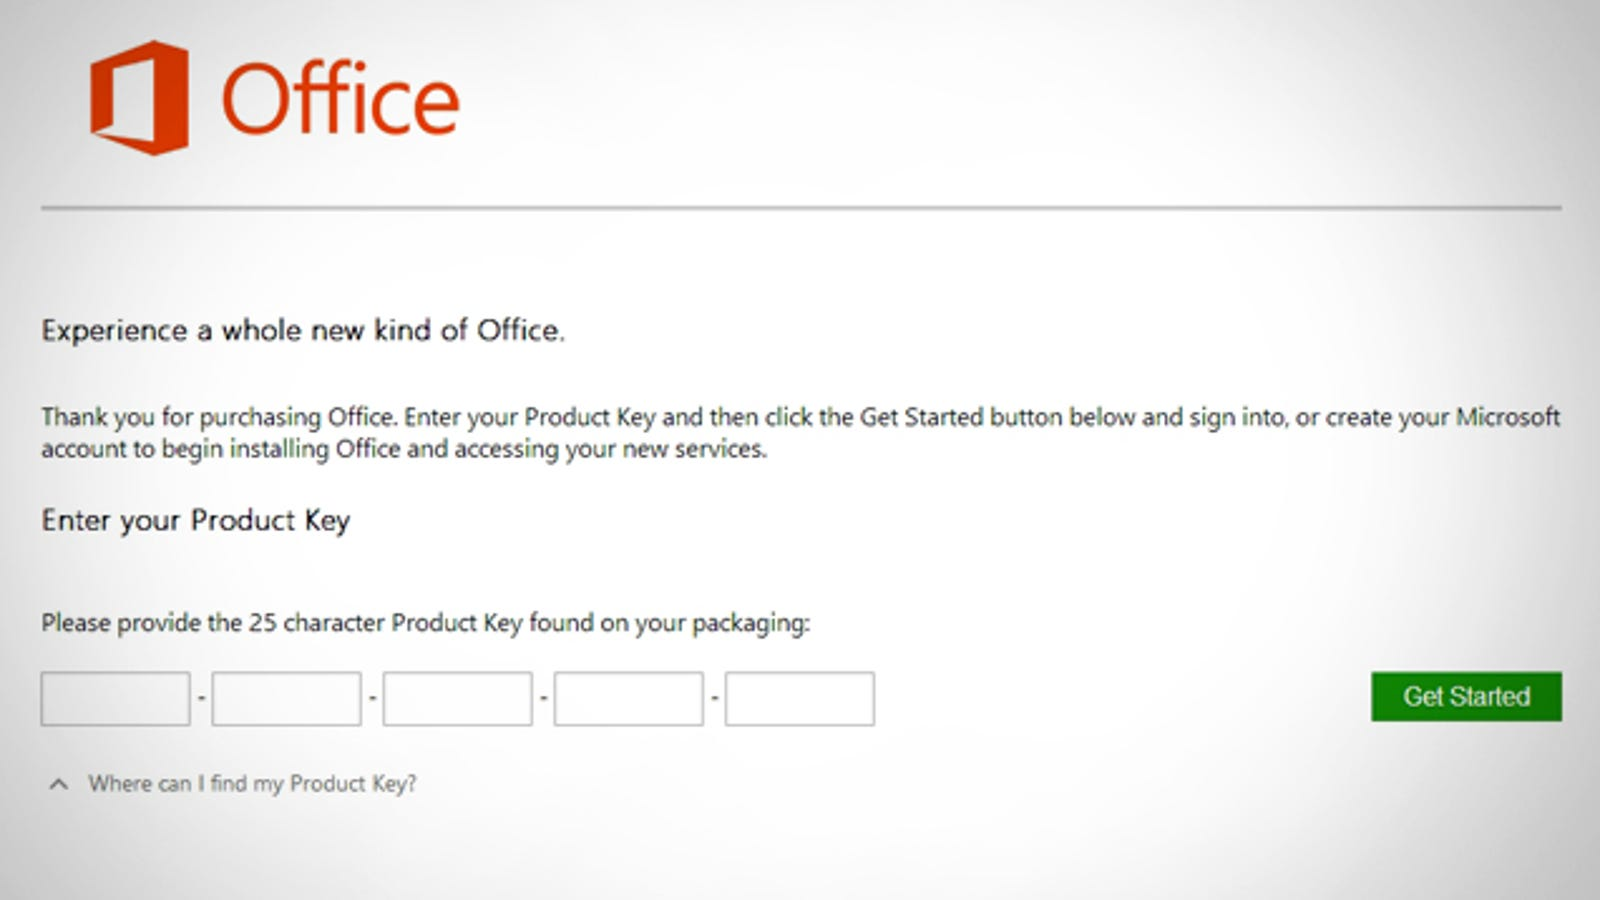 ms office 2007 free download for windows 8 with product key